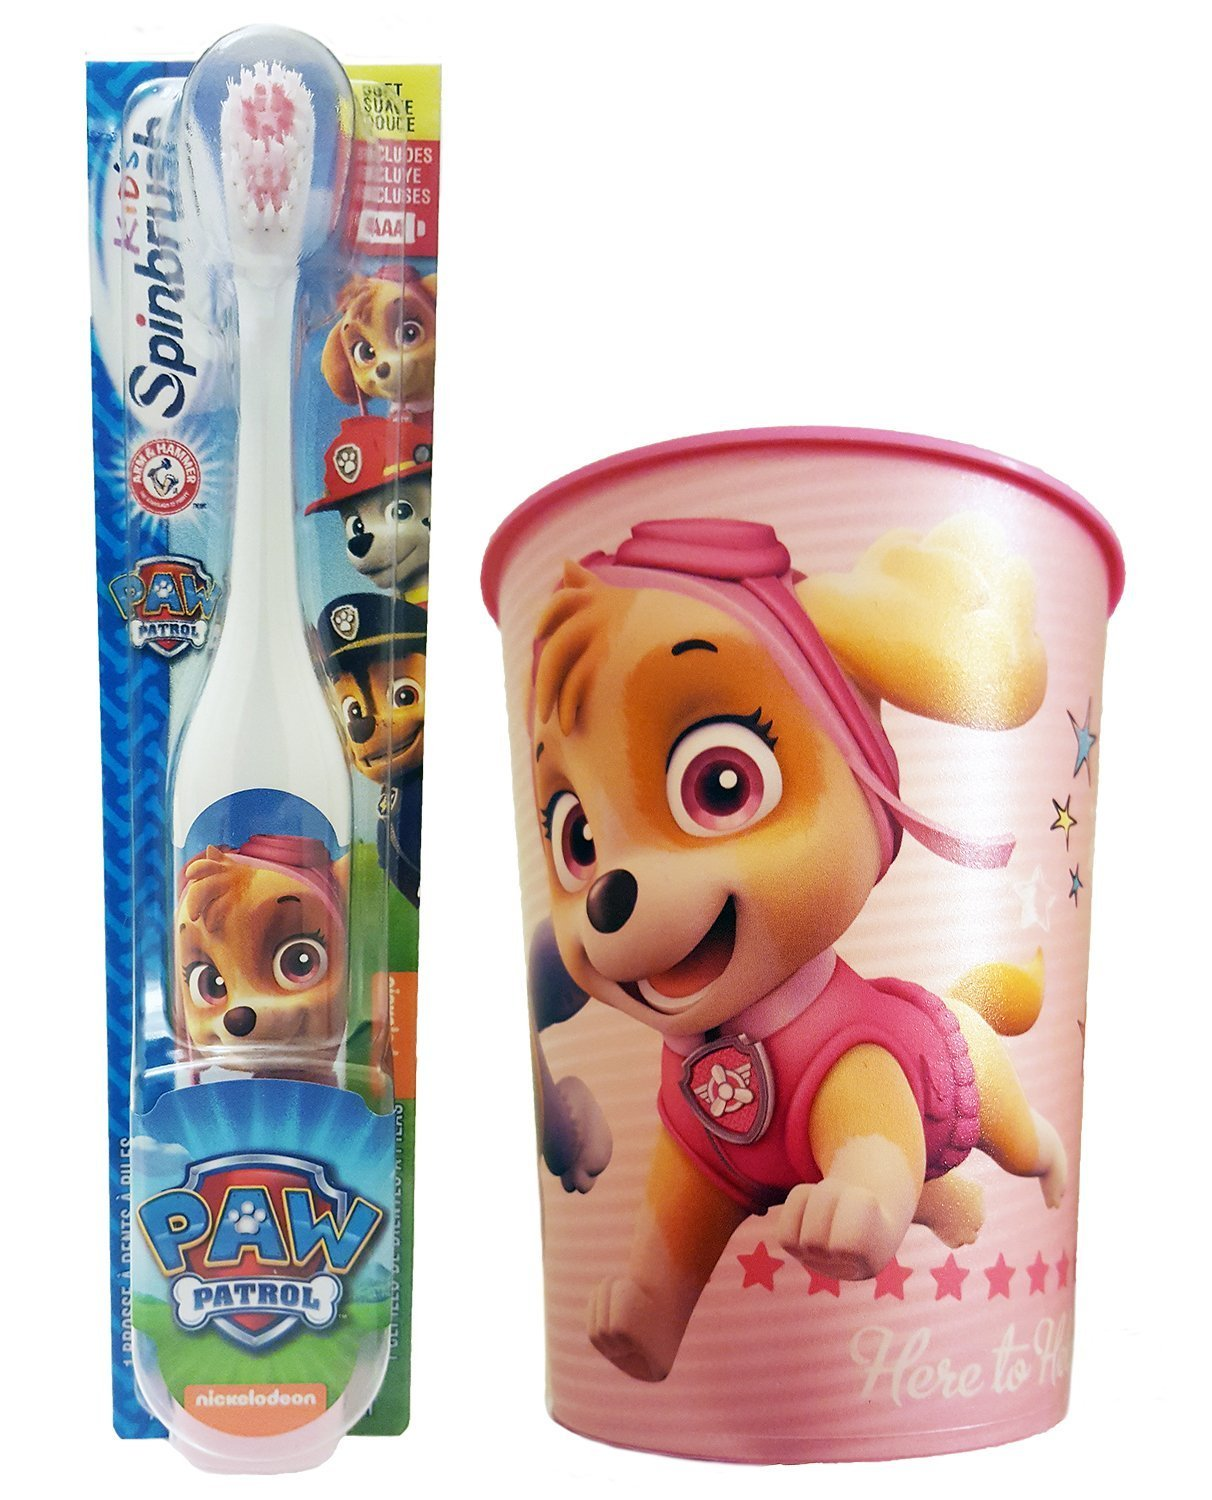 Amazon.com: Paw Patrol Skye Toothbrush & Rinse Cup Bundle: 2 Items - Spinbrush Toothbrush, Pink Character Rinse Cup: Beauty